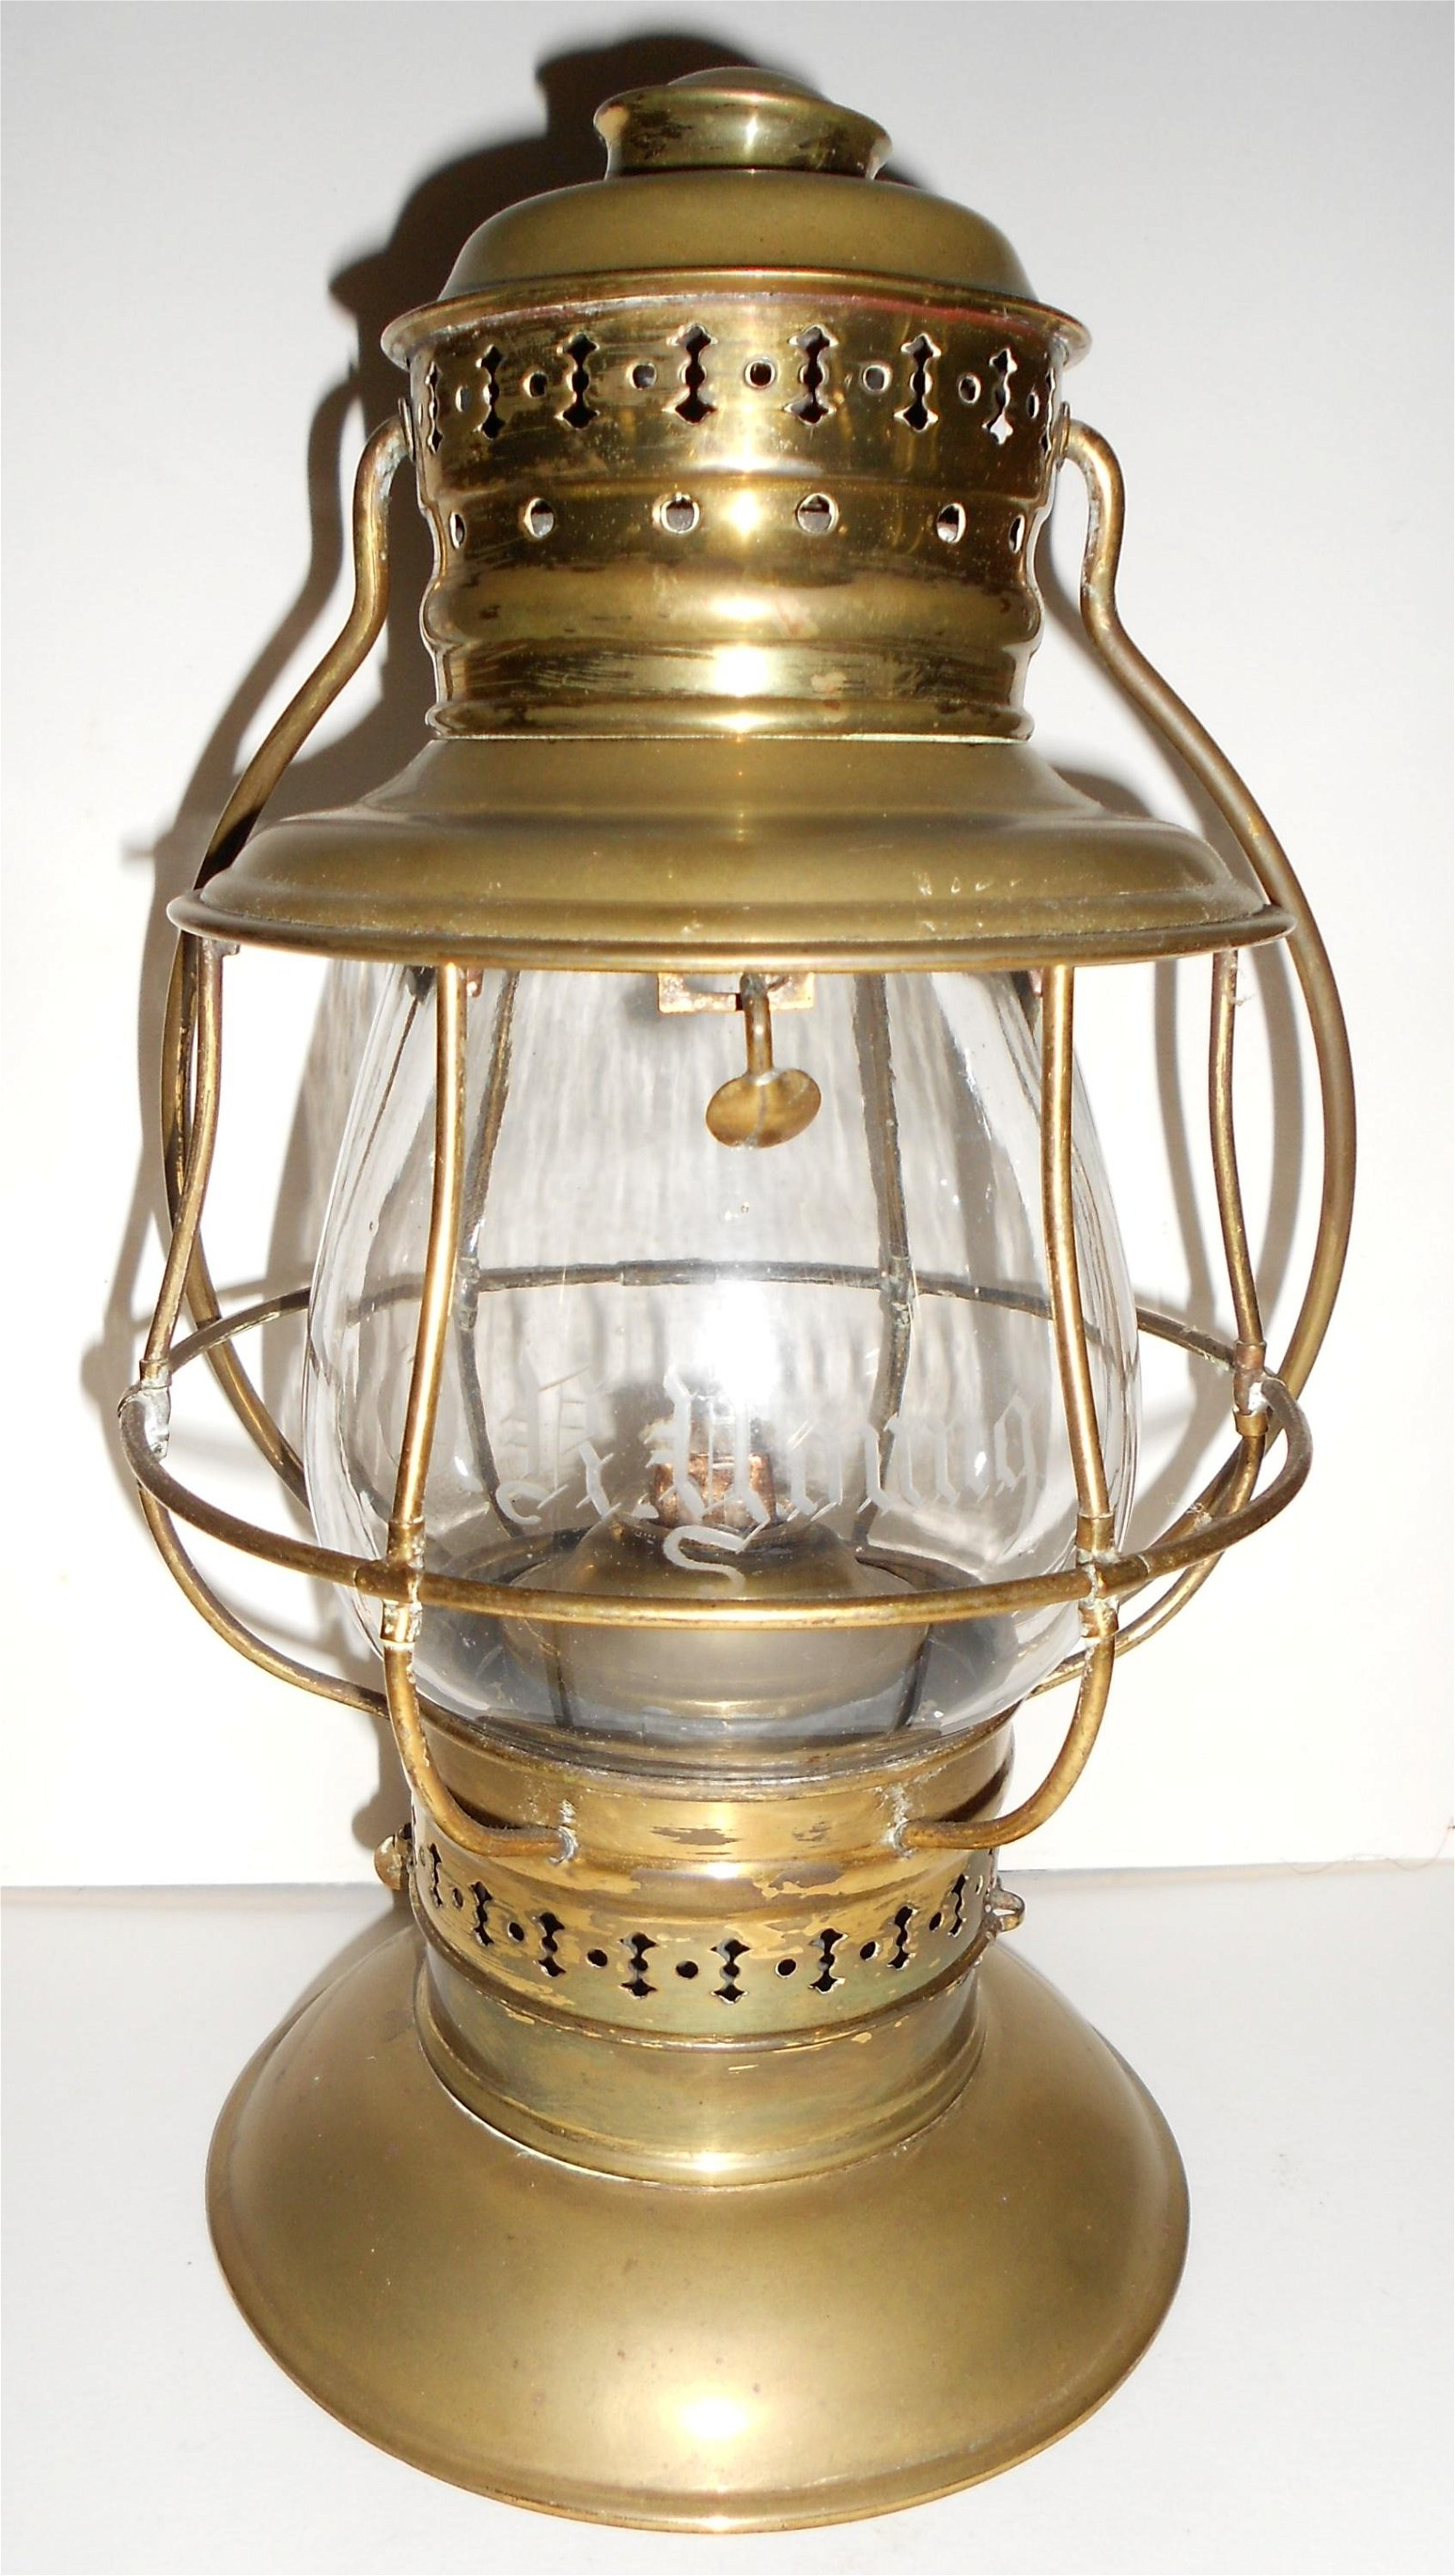 #39 Brass Conductor Lantern - D. R. YOUNG